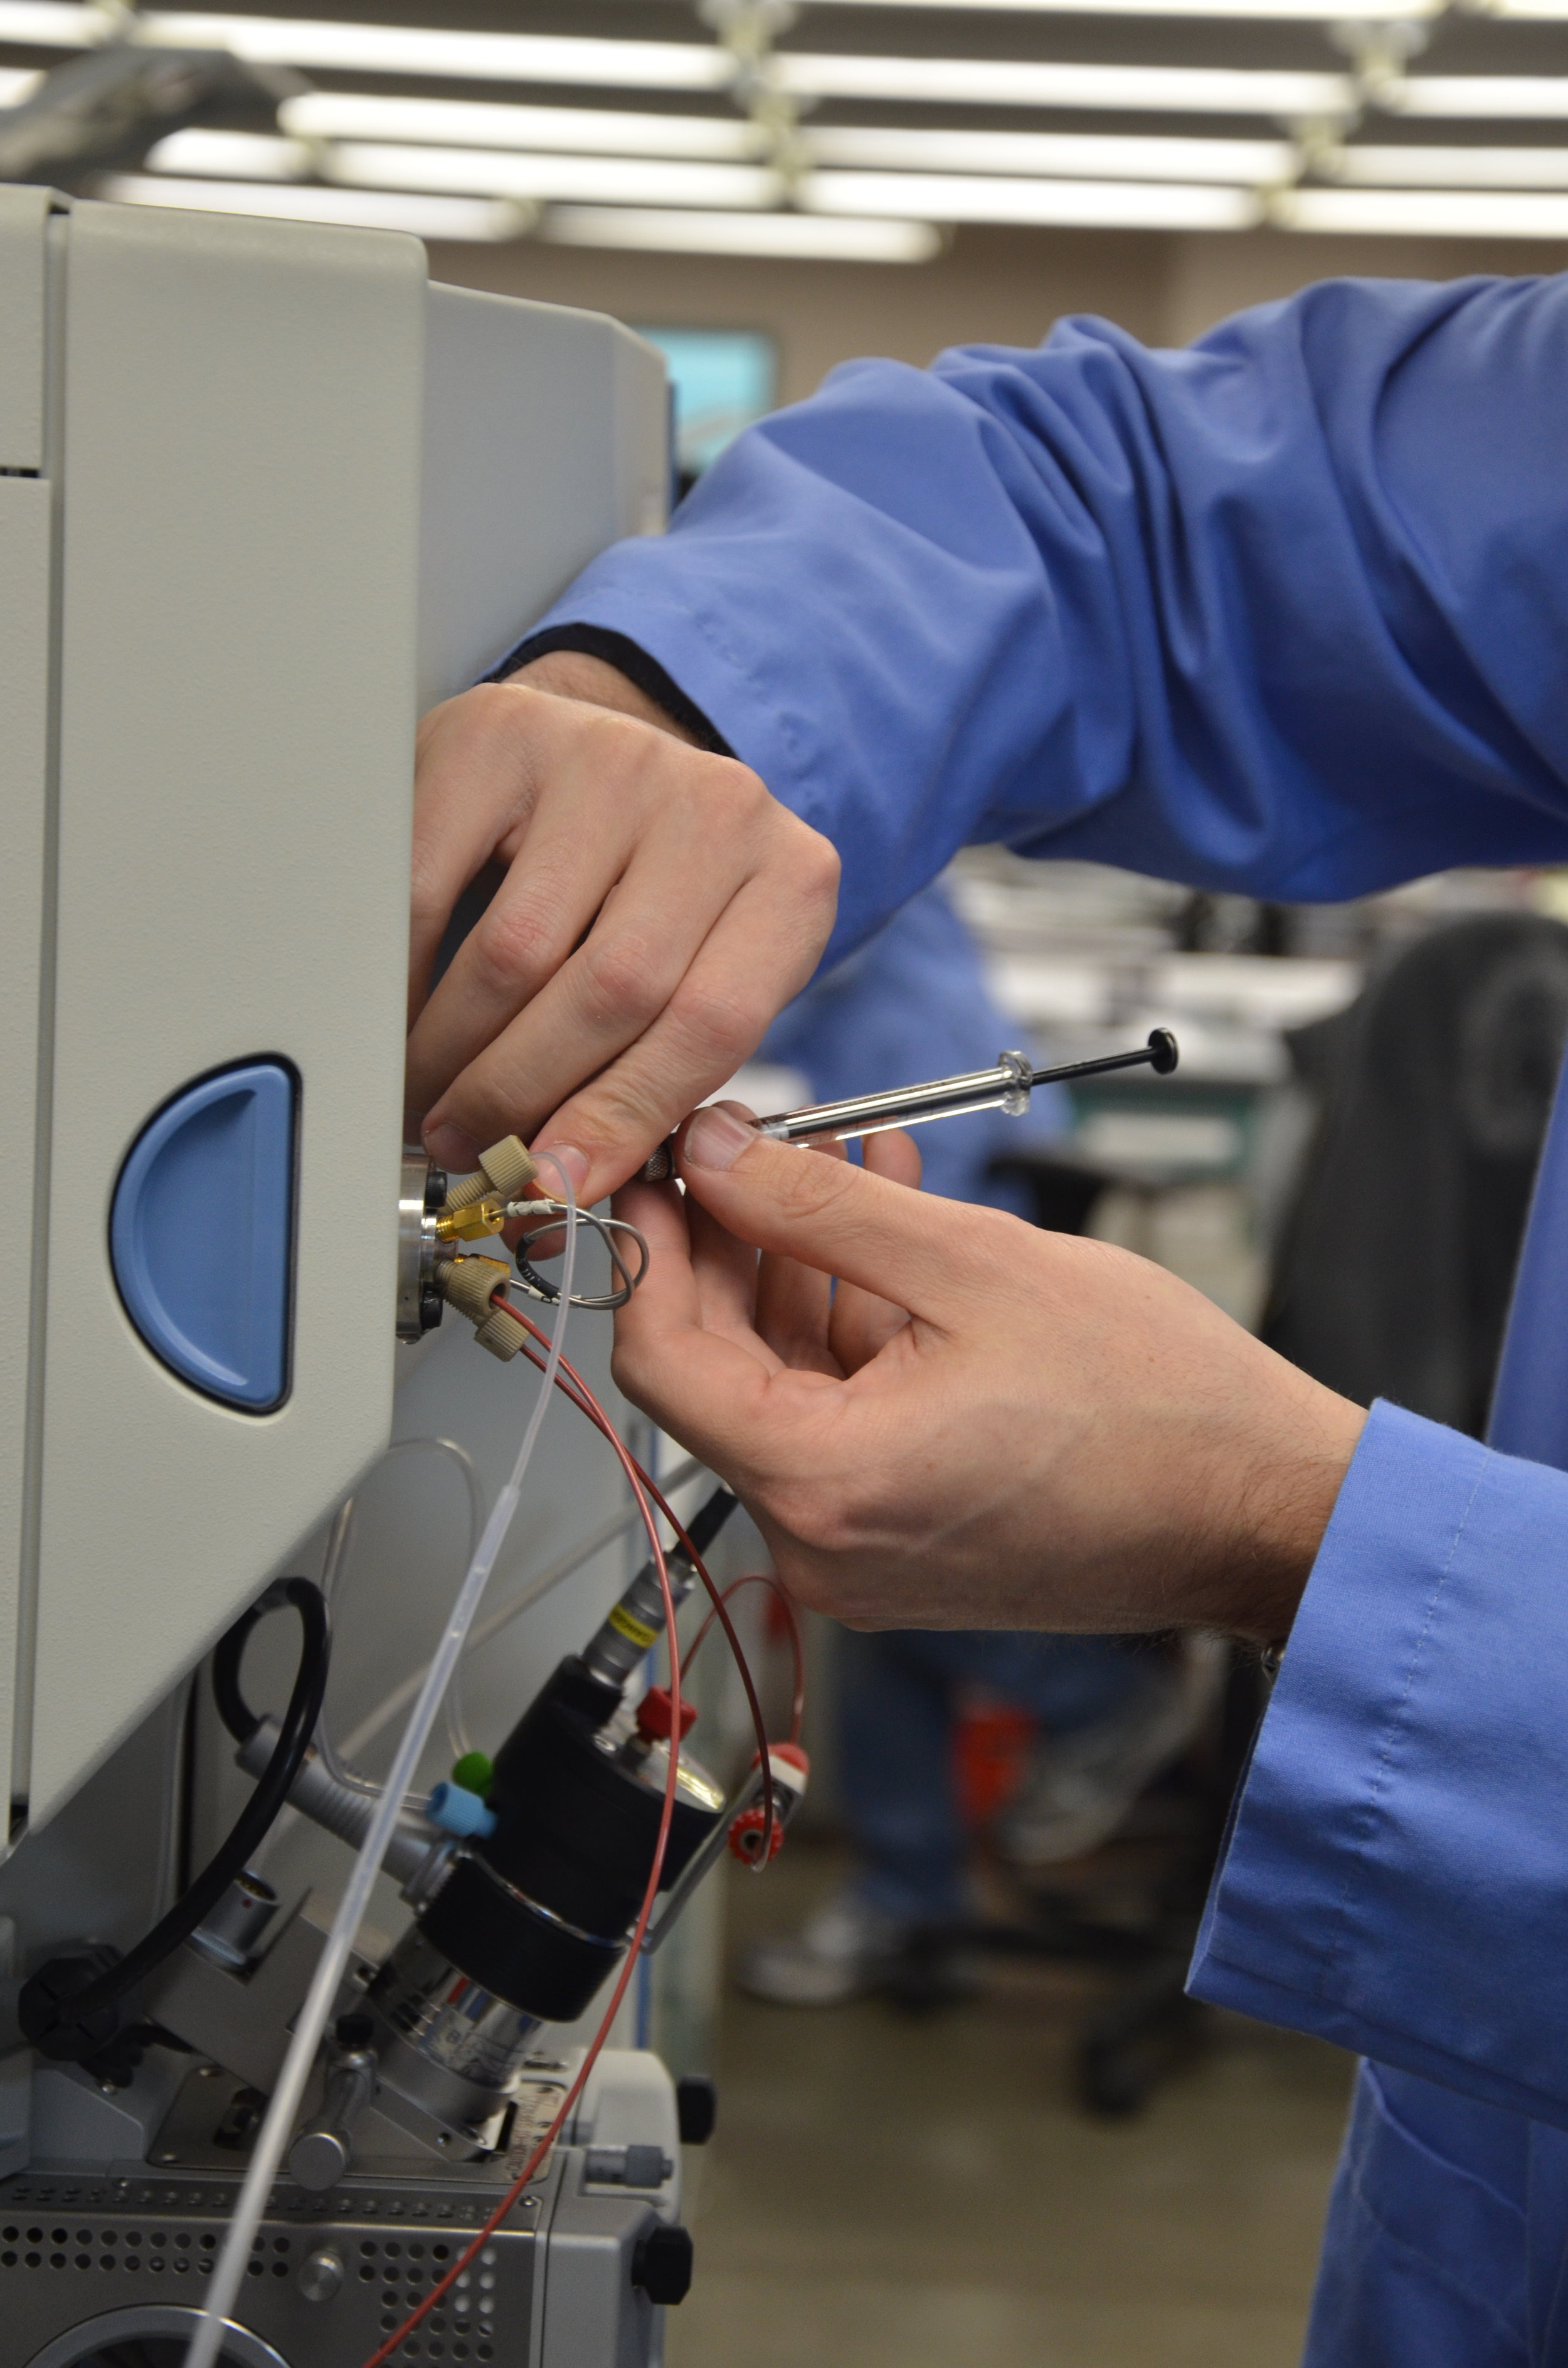 Our laboratory offers greater analytical sensitivity